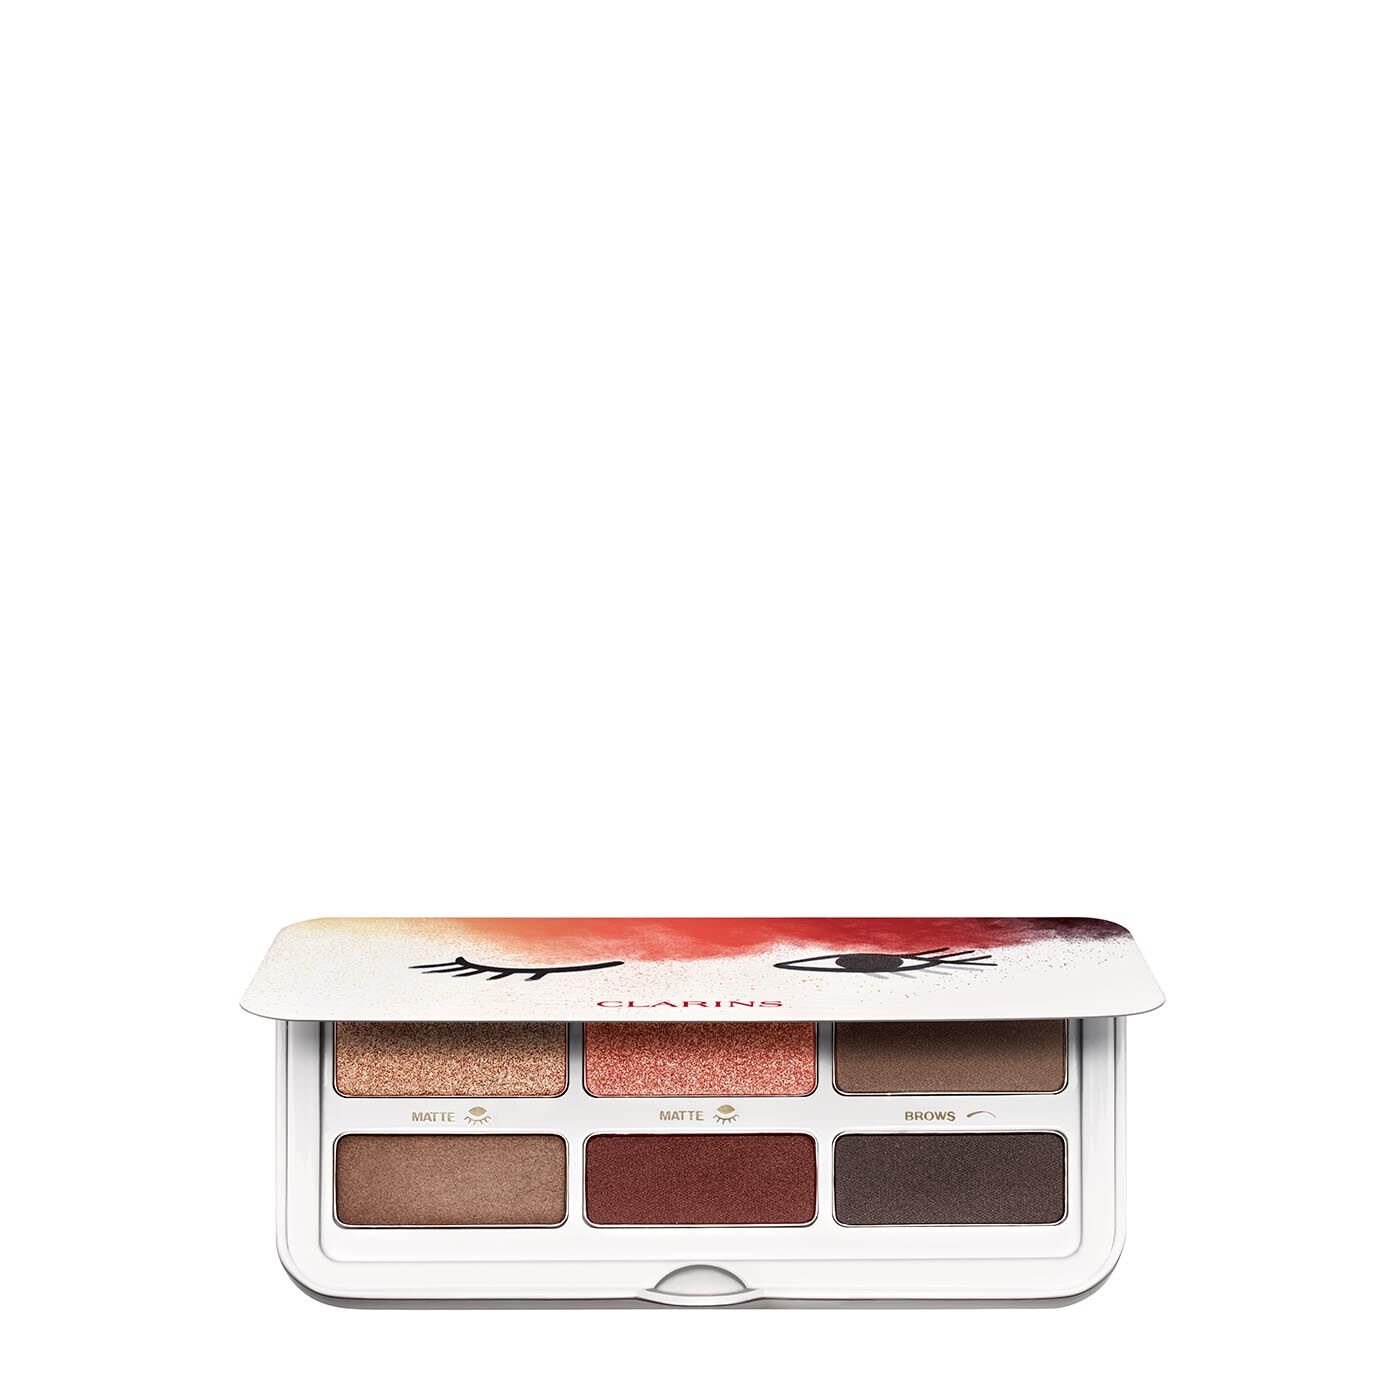 Makeup-Palette%20Ready%20in%20a%20Flash